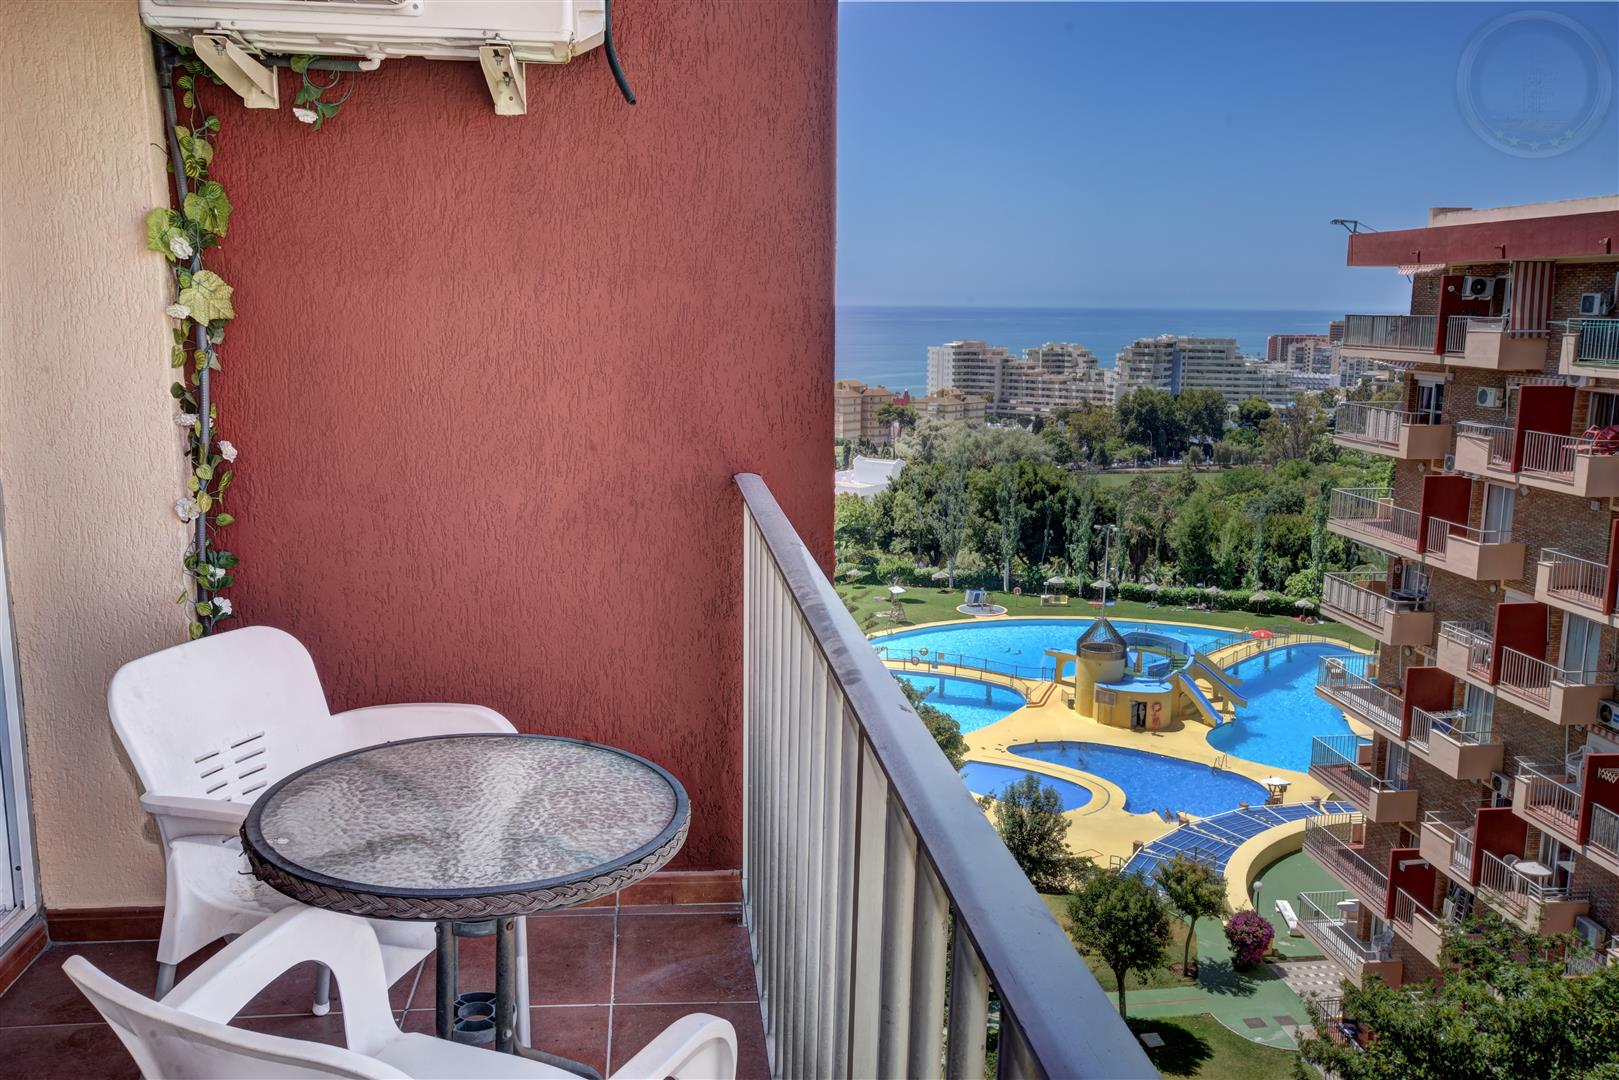 Apartment for Sale in Minerva - Views